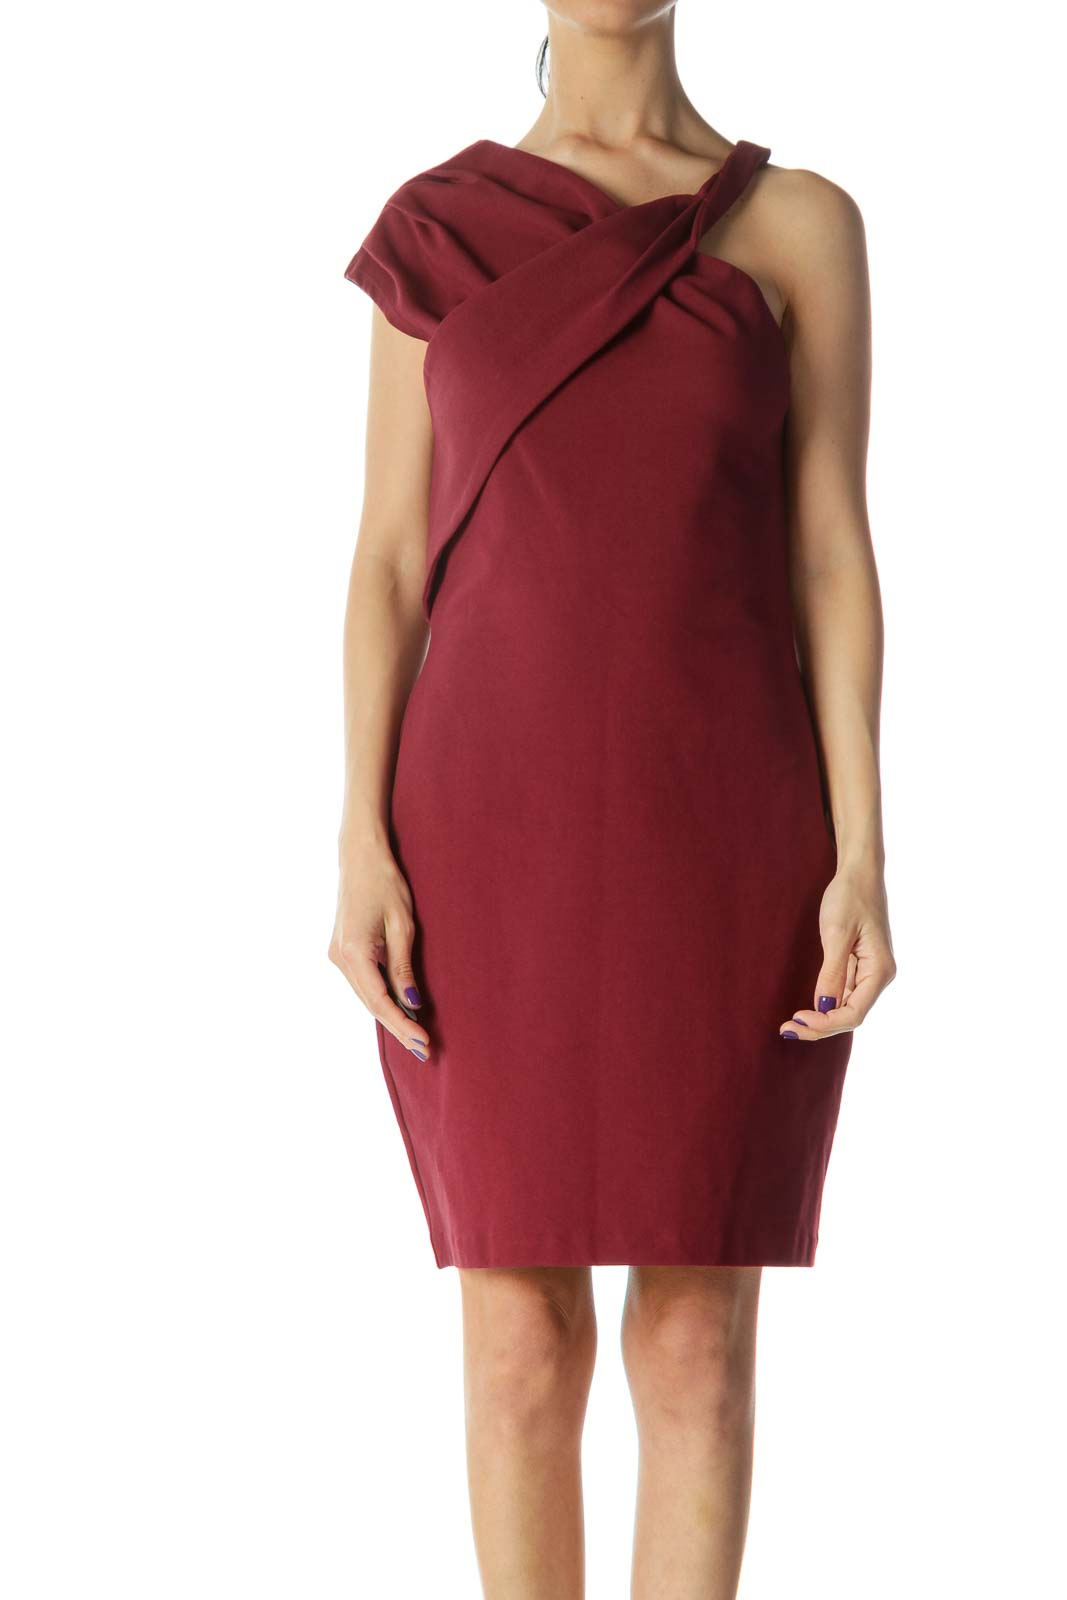 Red Asymmetric Bodycon Dress Front